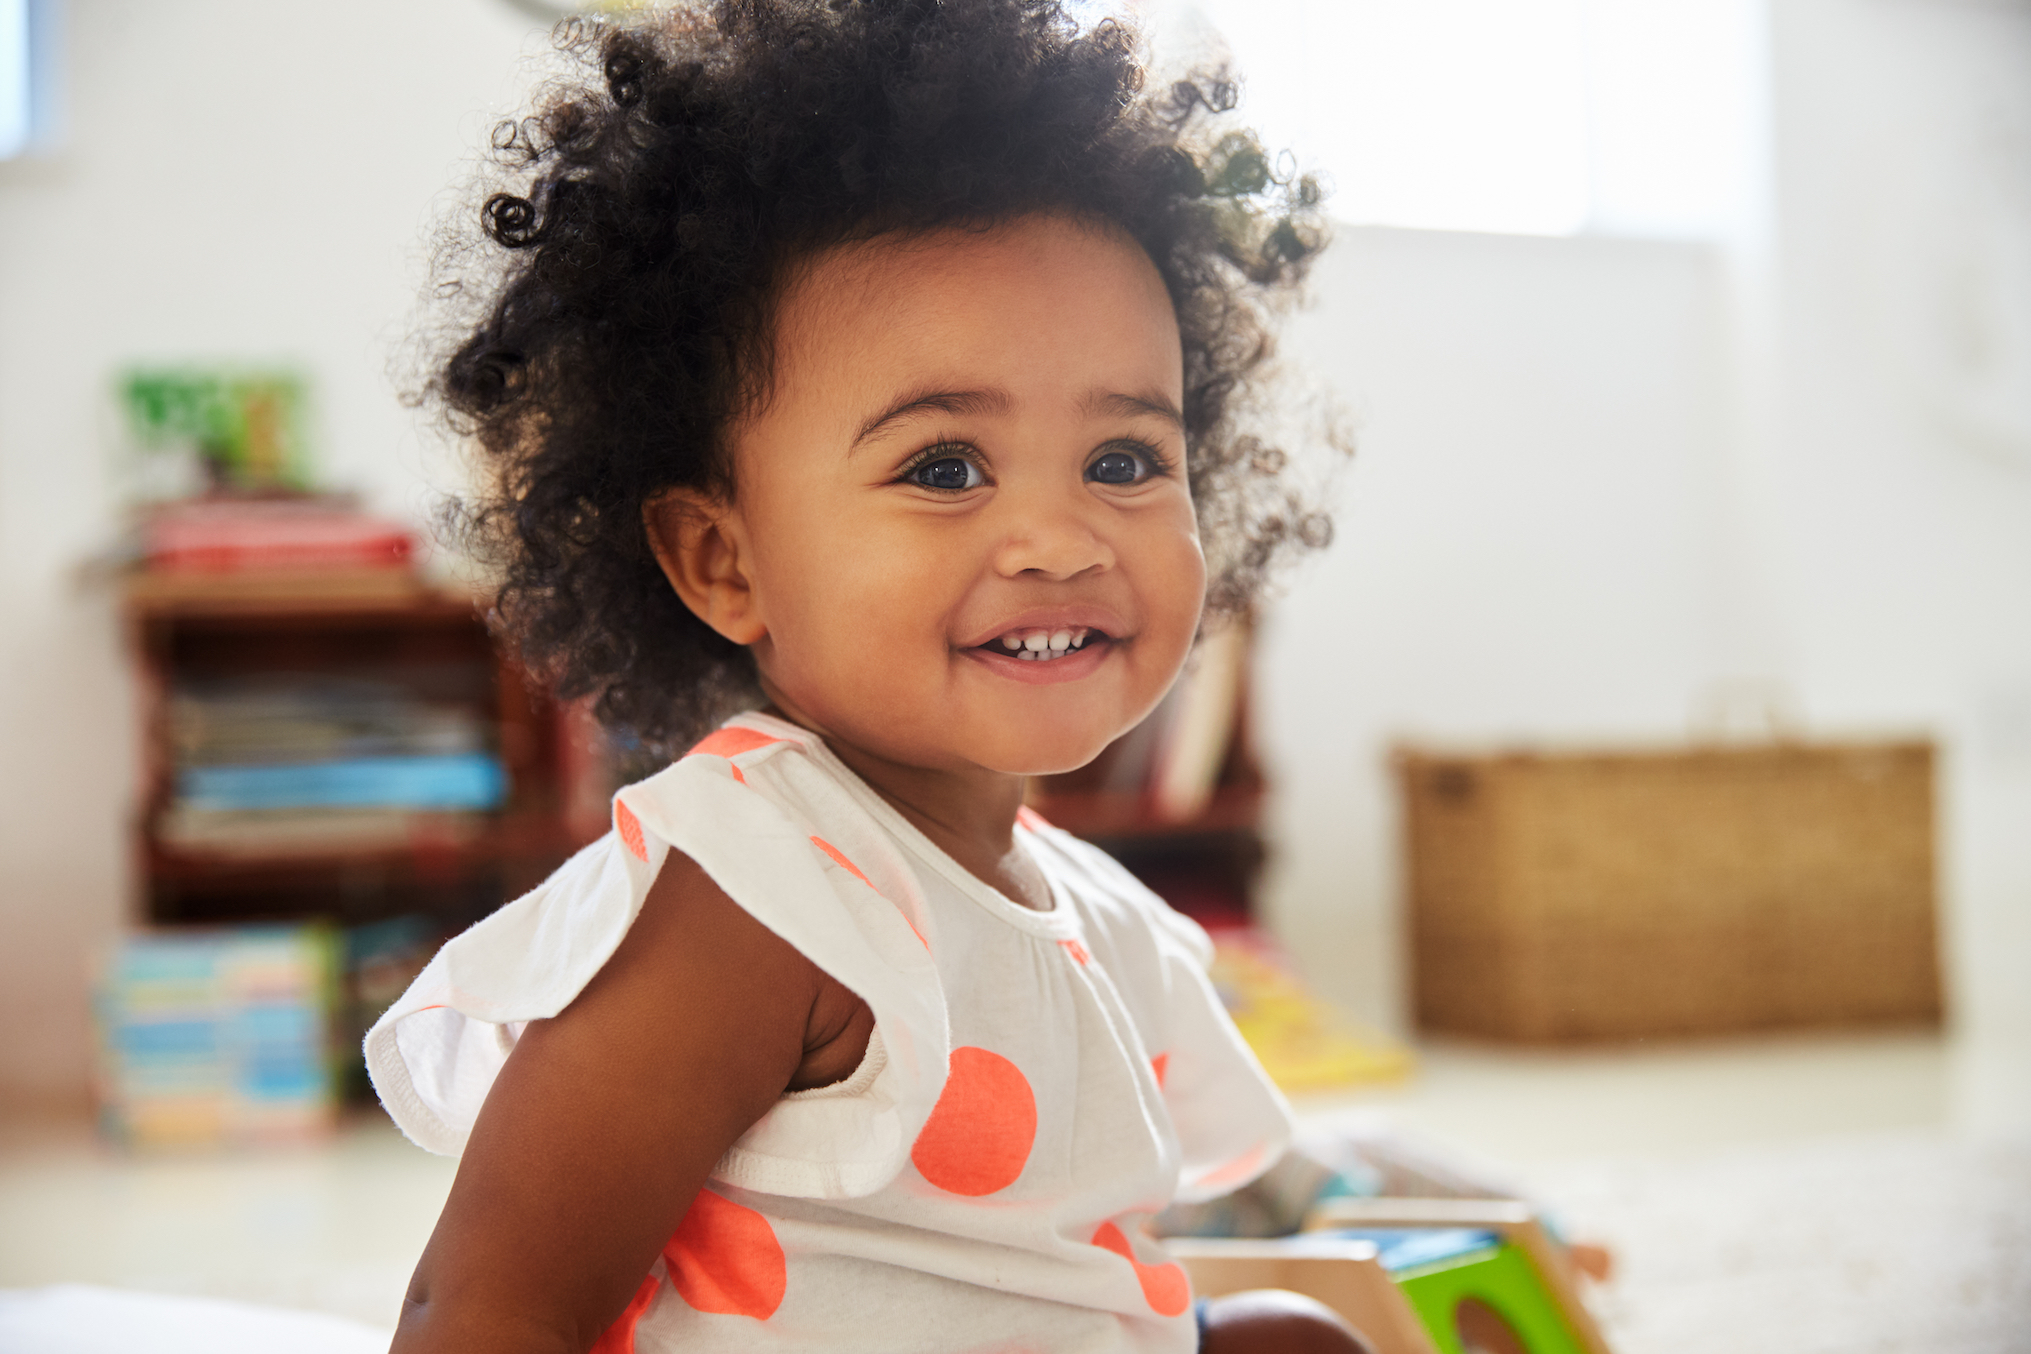 A recent study reports that toddlers are aware that they are being judged much earlier than what was previously realized. T